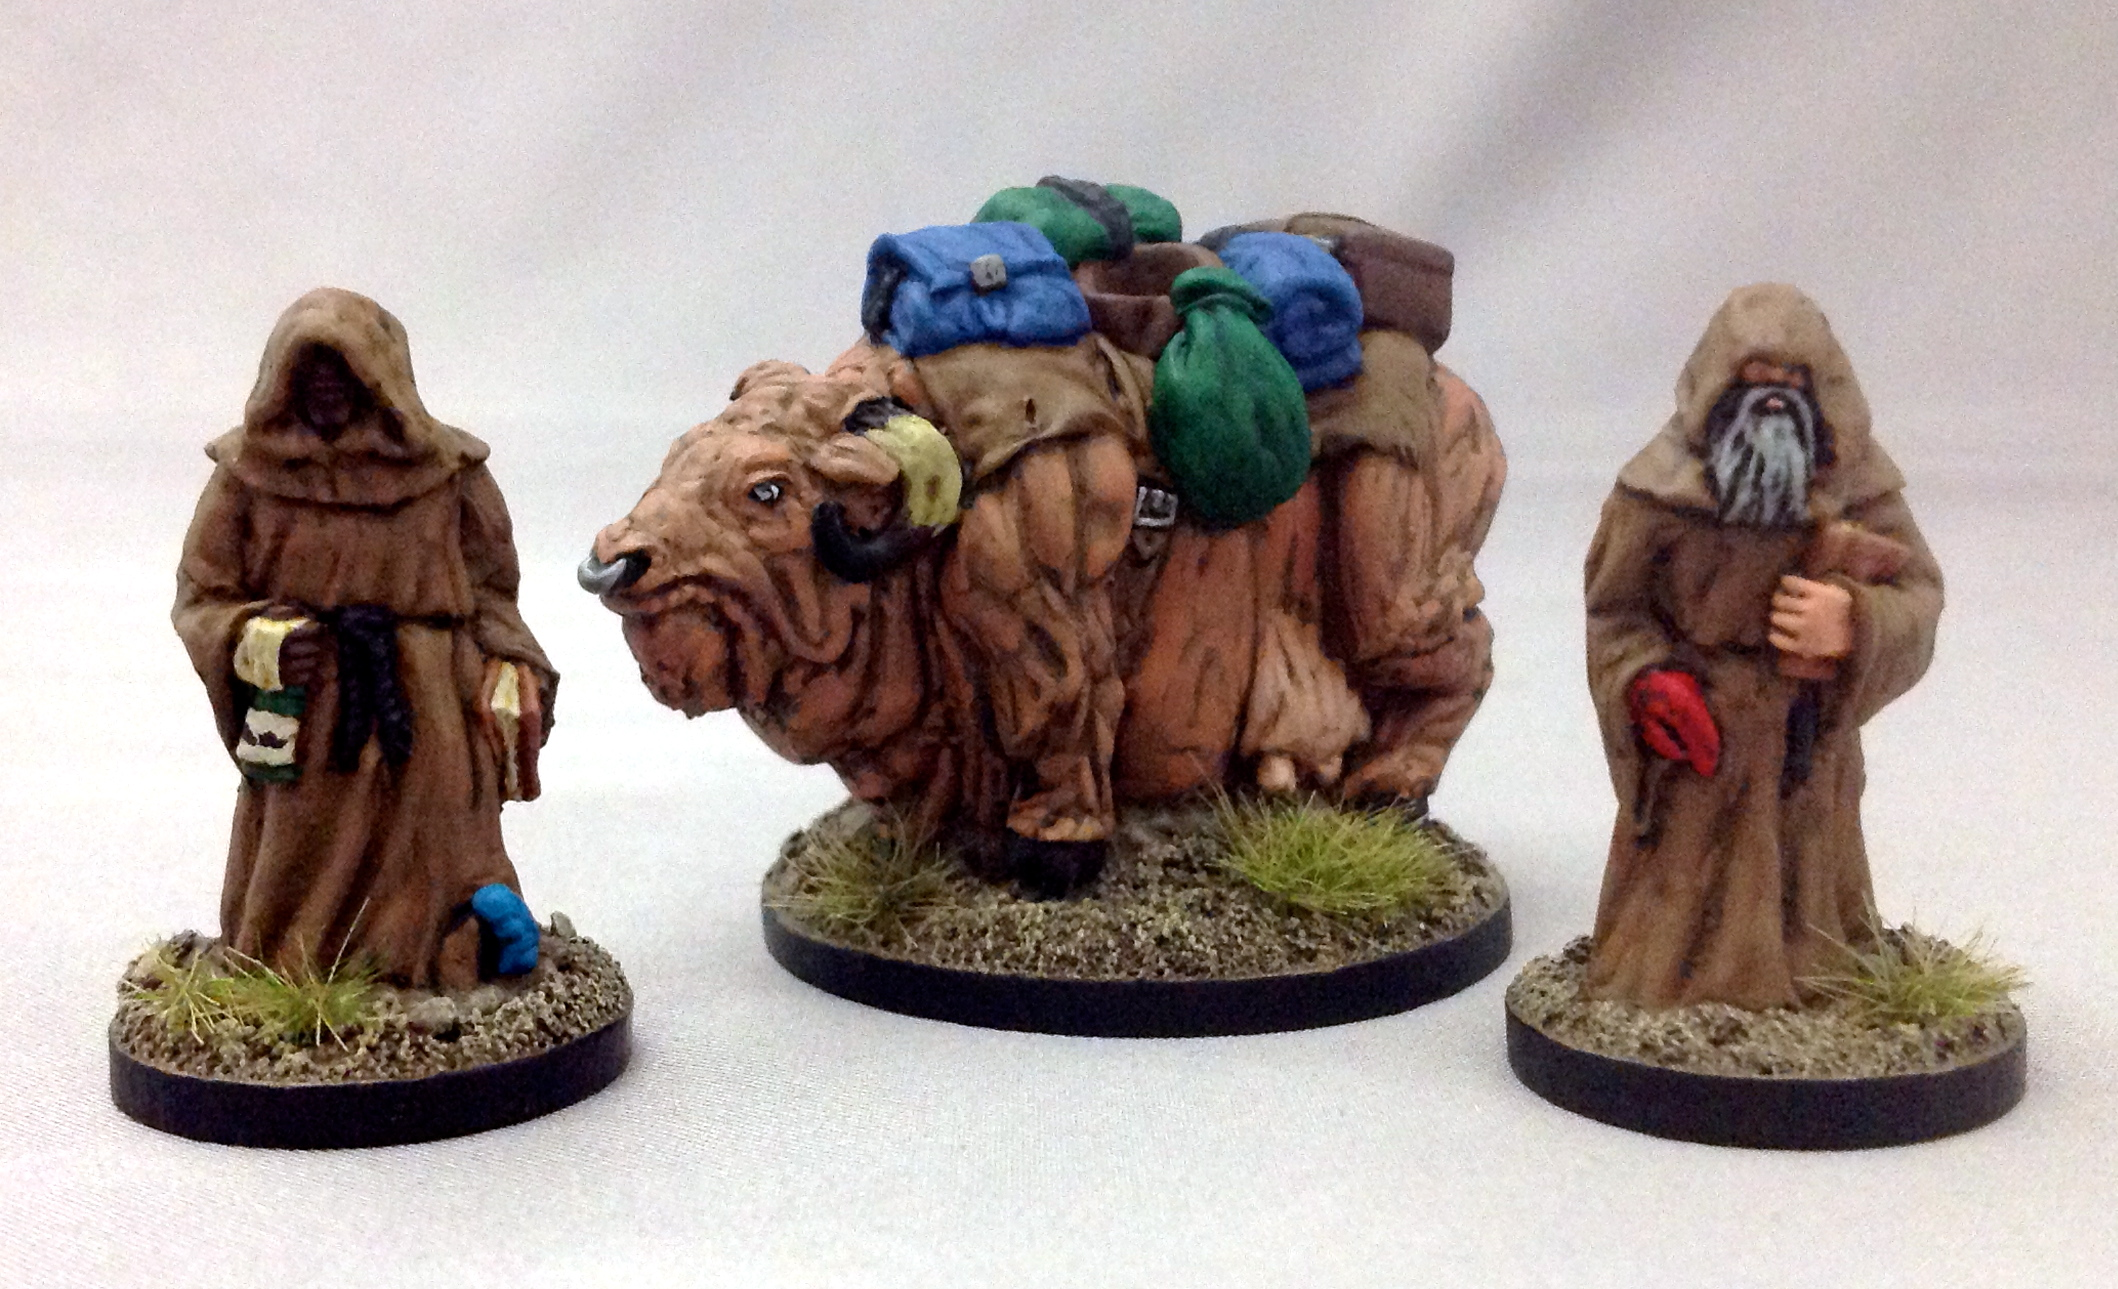 The finished Wasteland Pilgrims marching to oblivion!